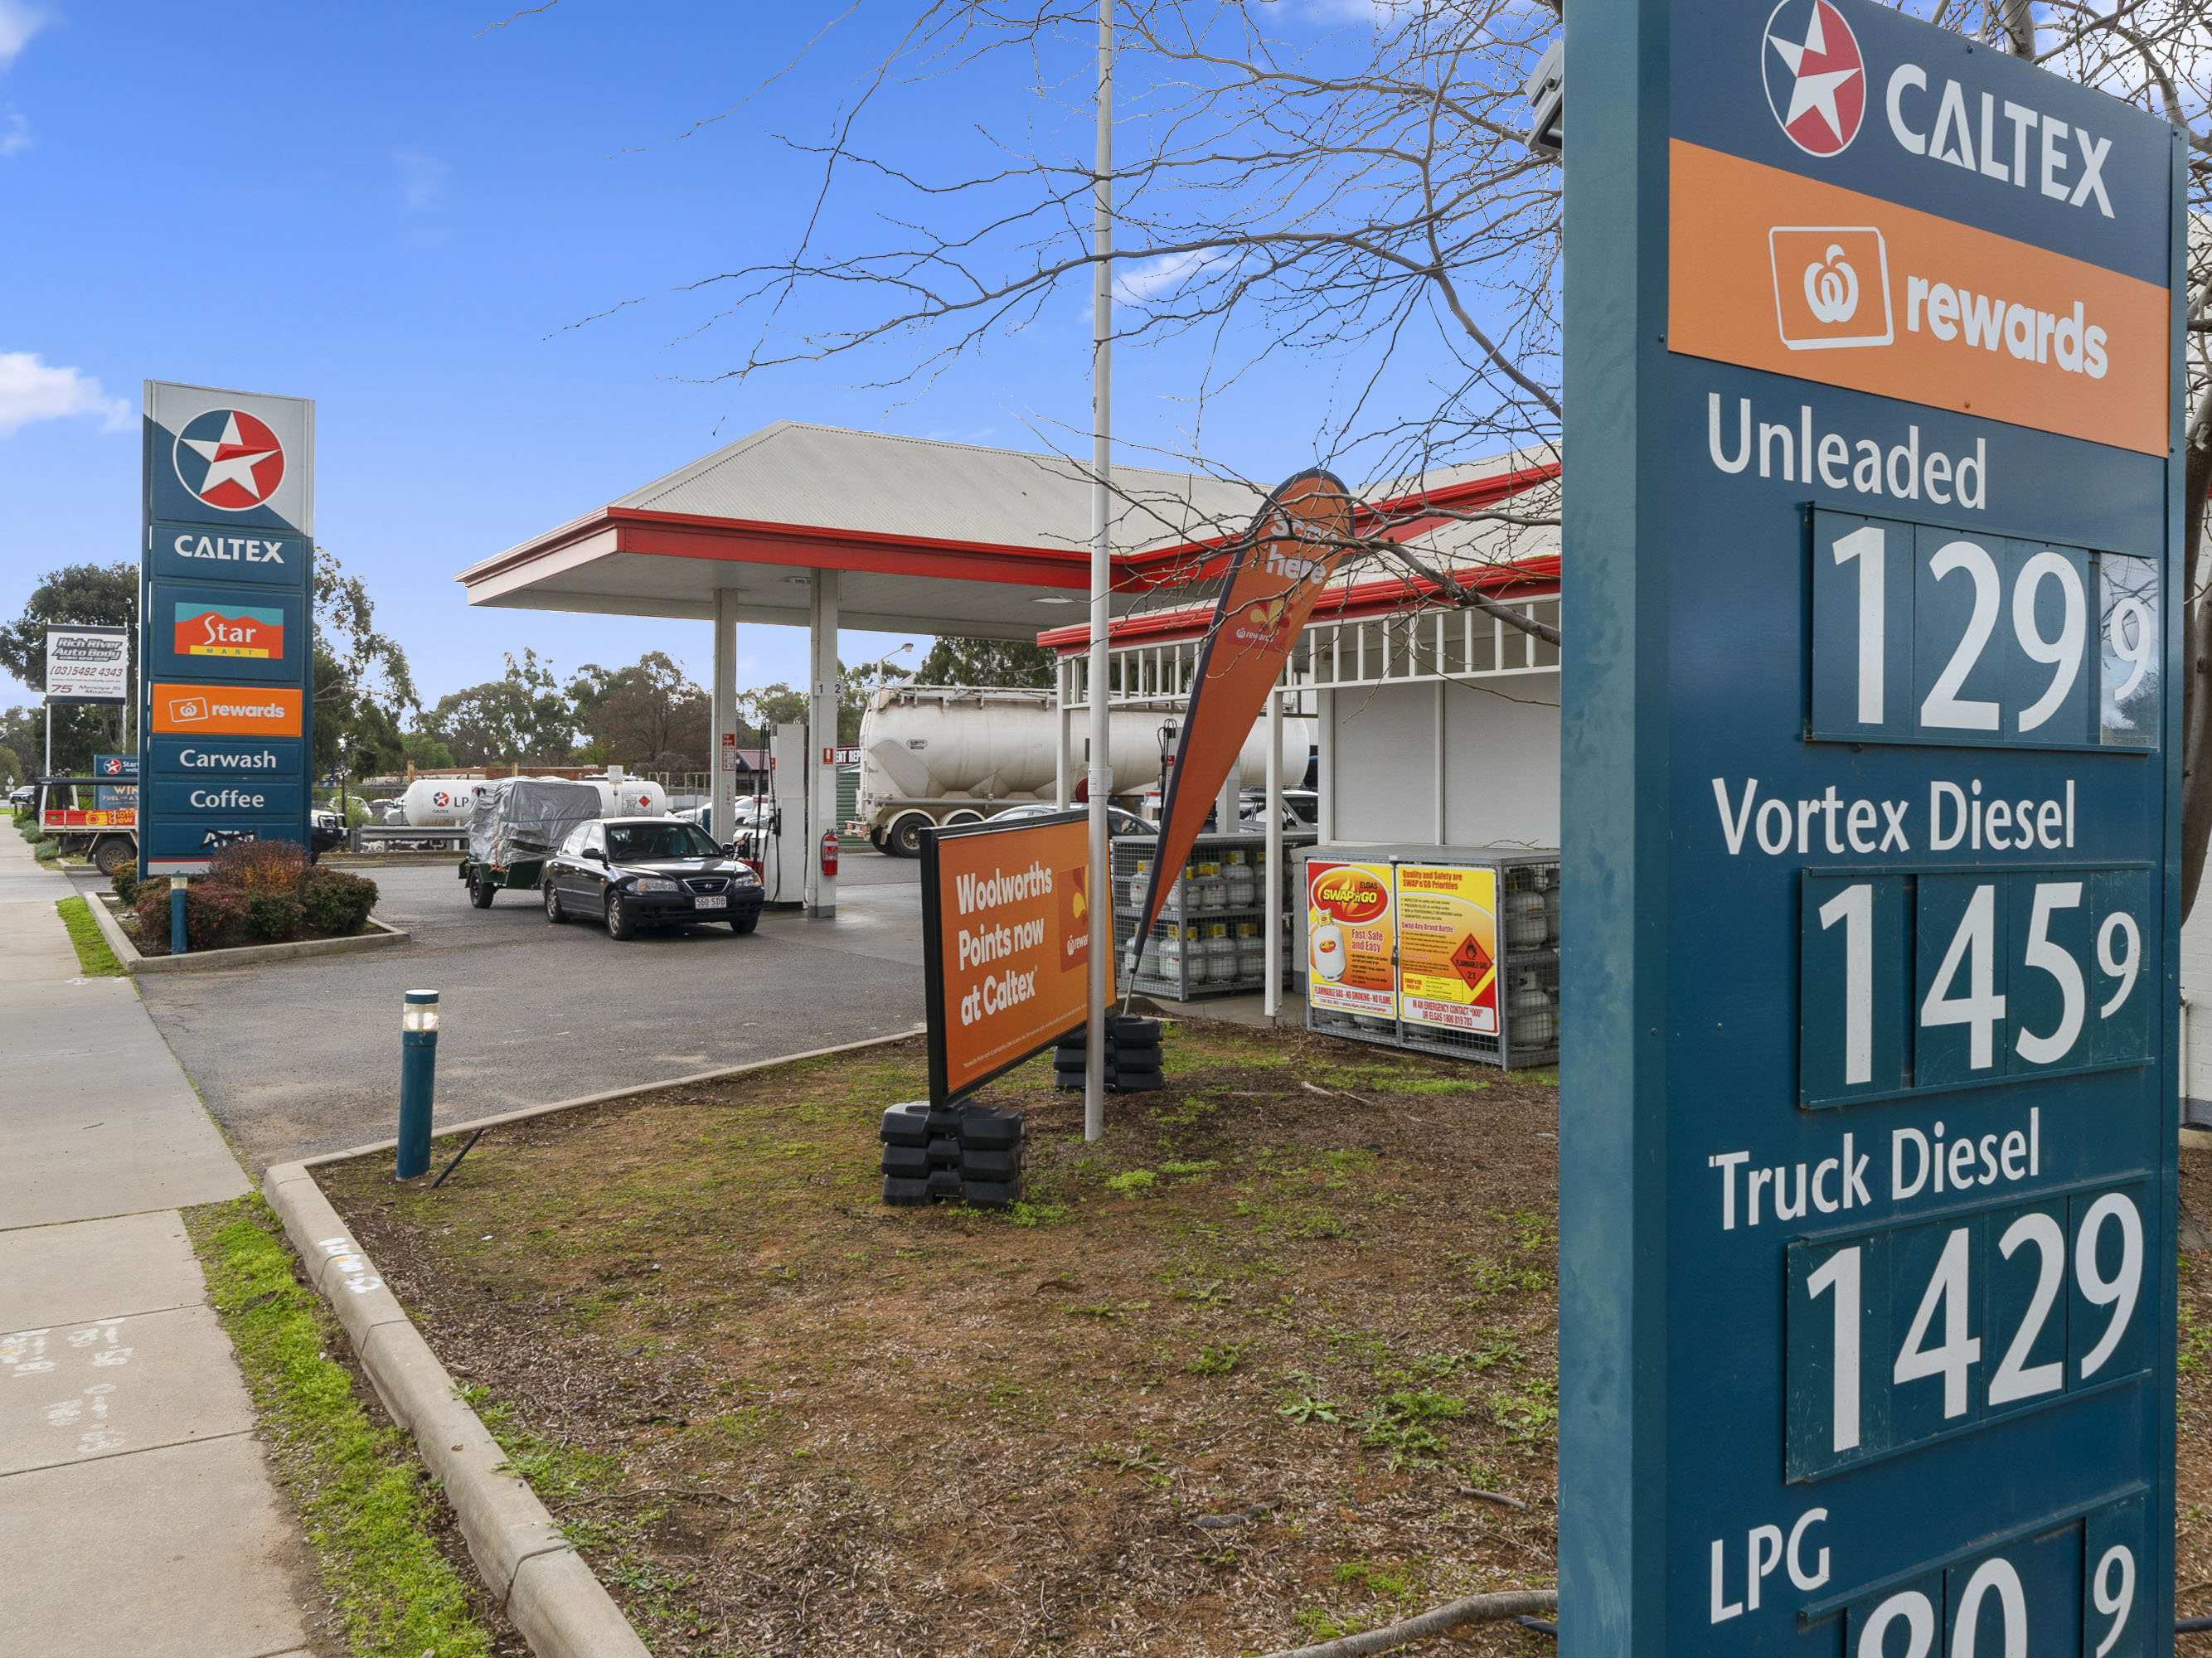 Secure Caltex Net Lease – Circa 8% Yield